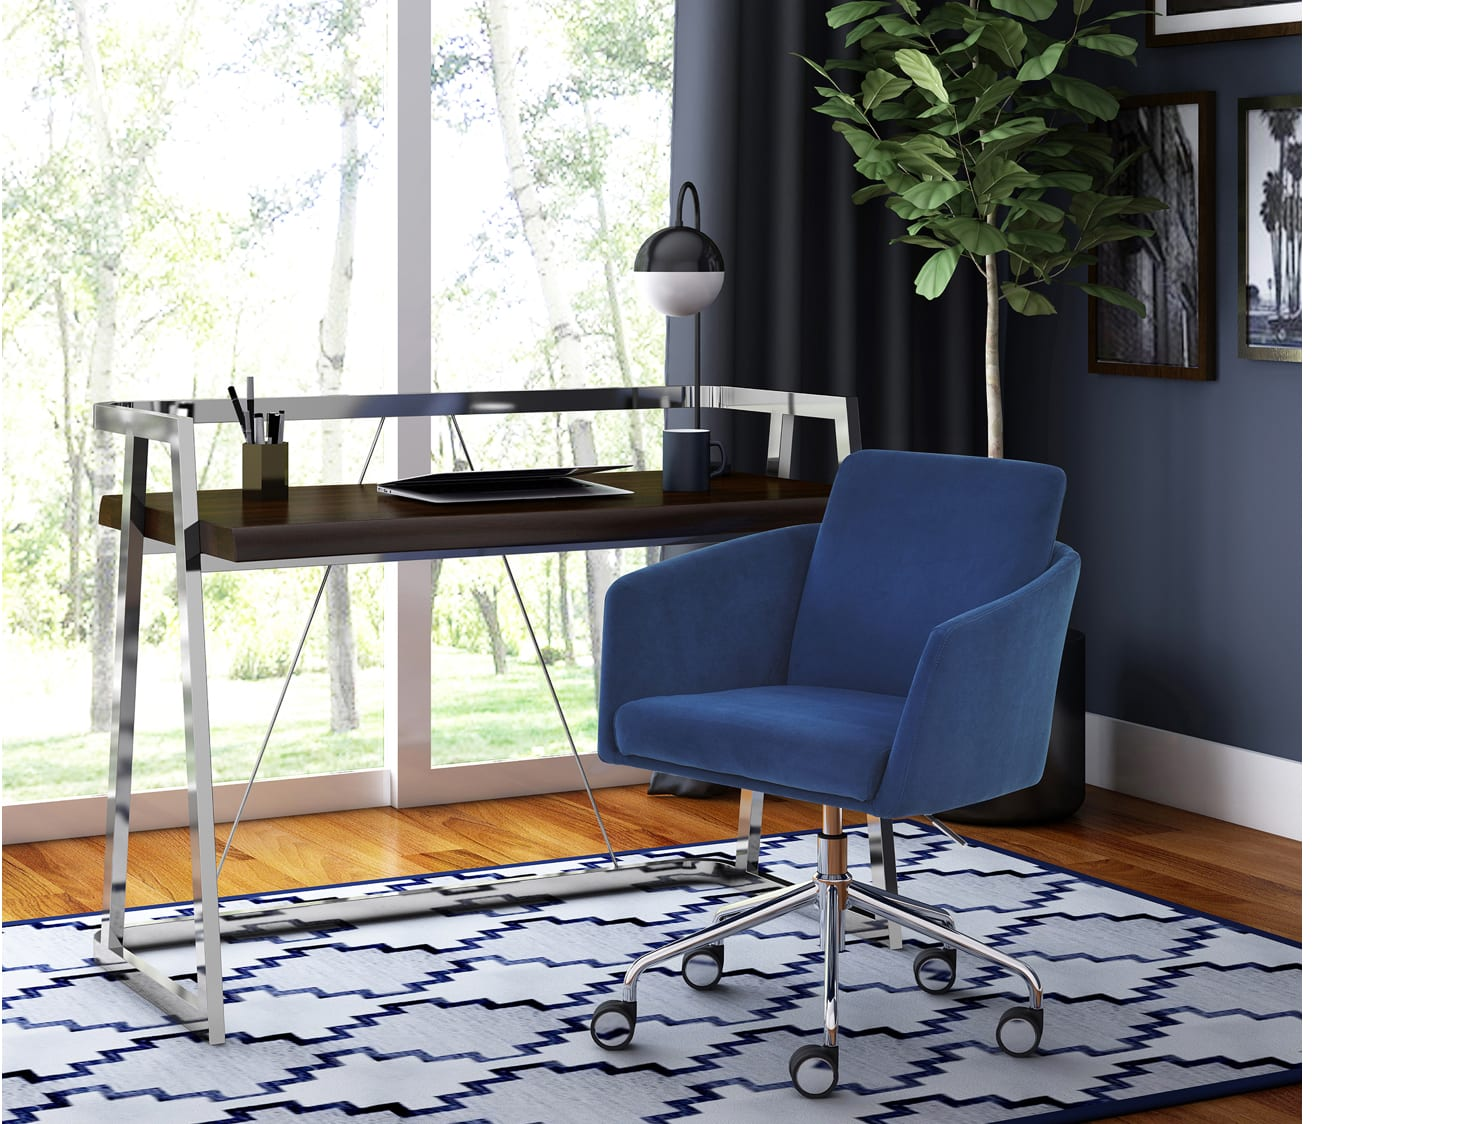 Modern home office desk and blue chair